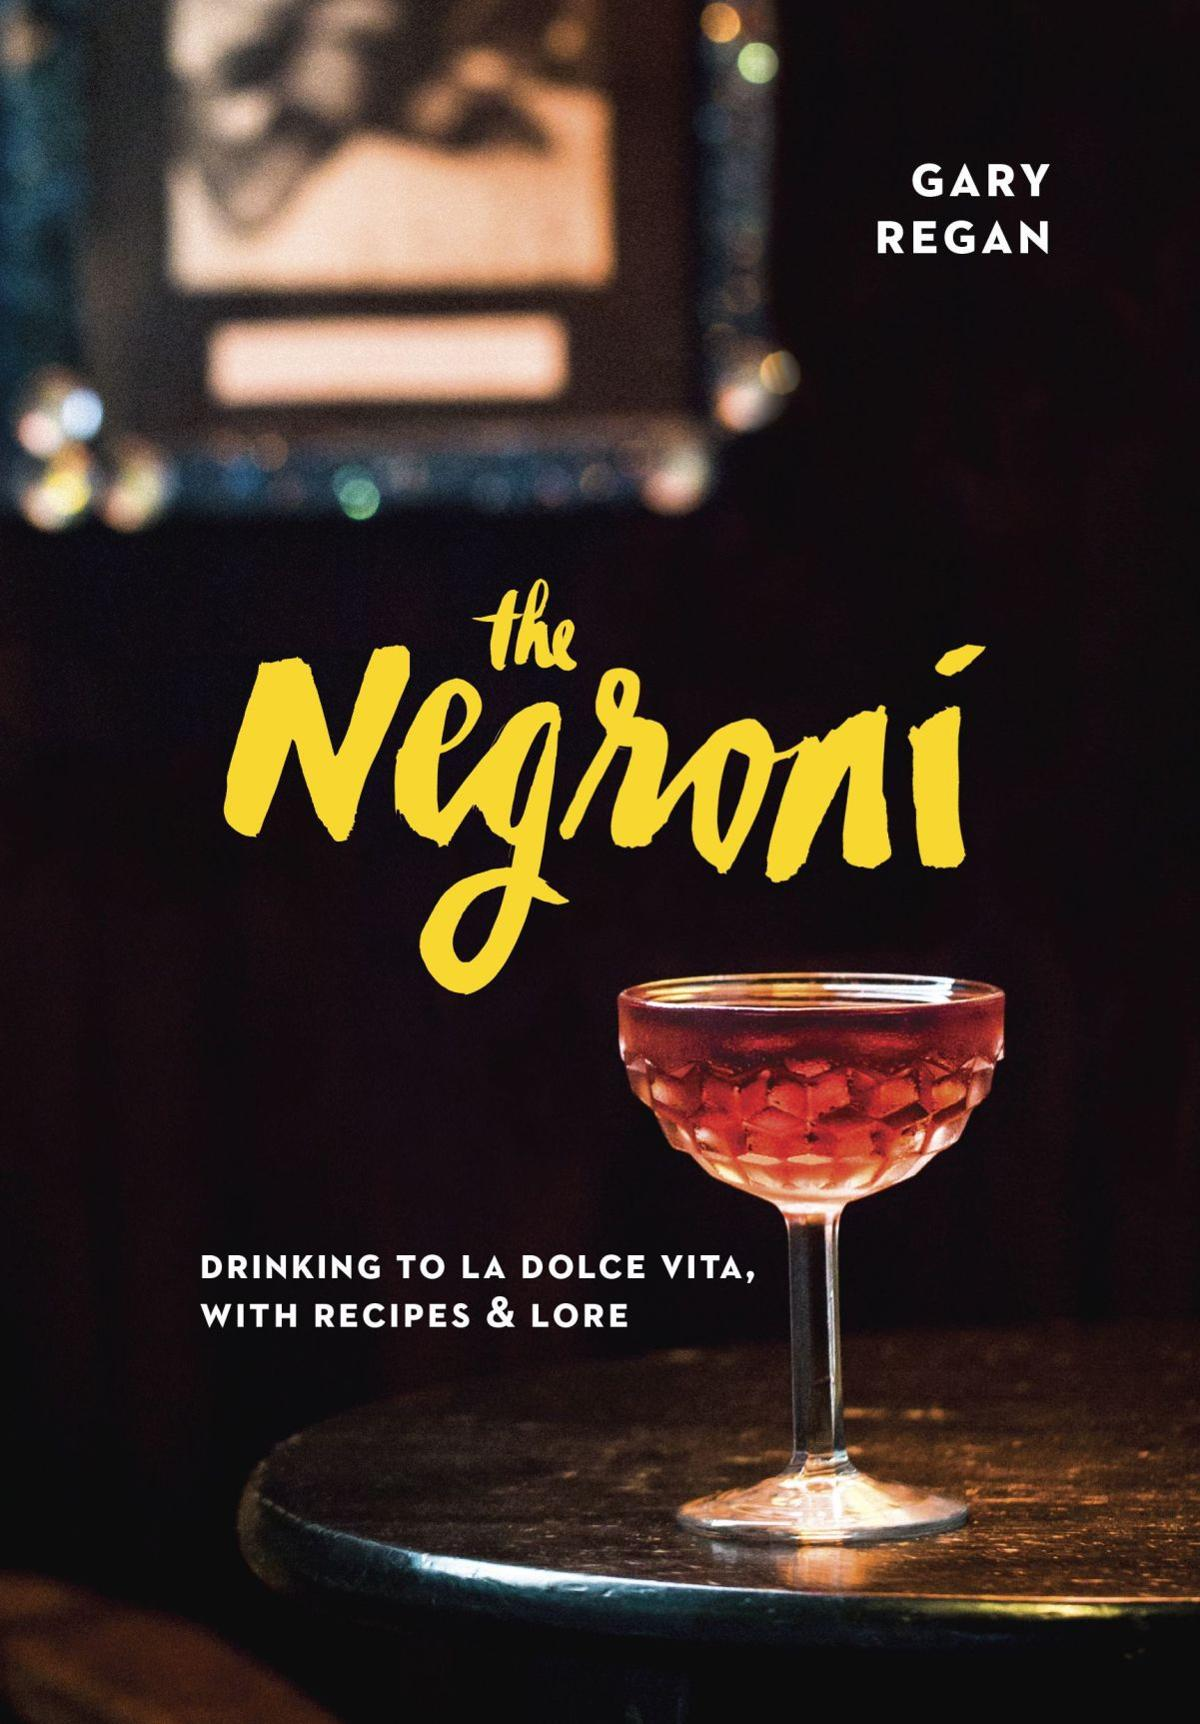 Making a case for Negroni cocktail